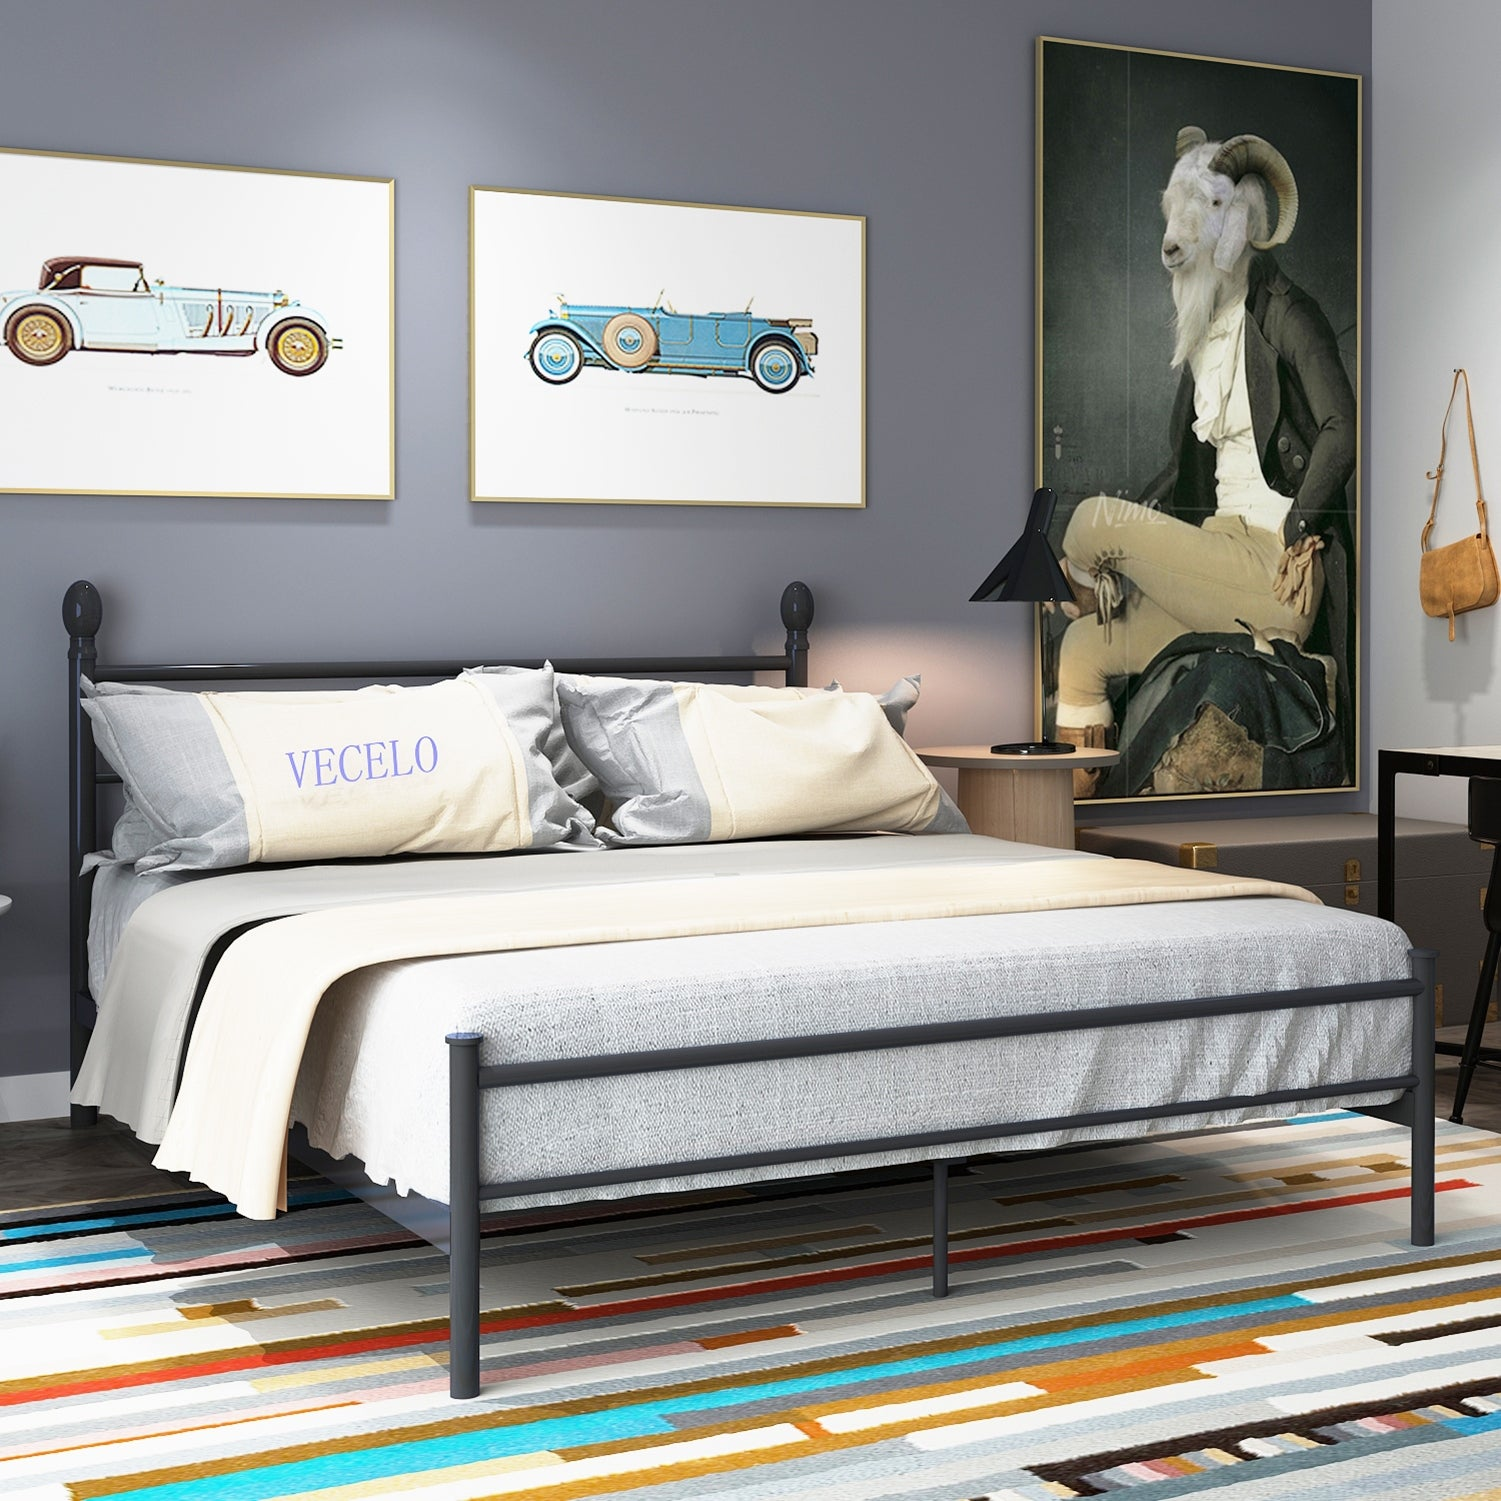 Vecelo Platform Bed Frame Metal Bed With Headboard And Footboard Twin Full Queen King Size Overstock 13047274